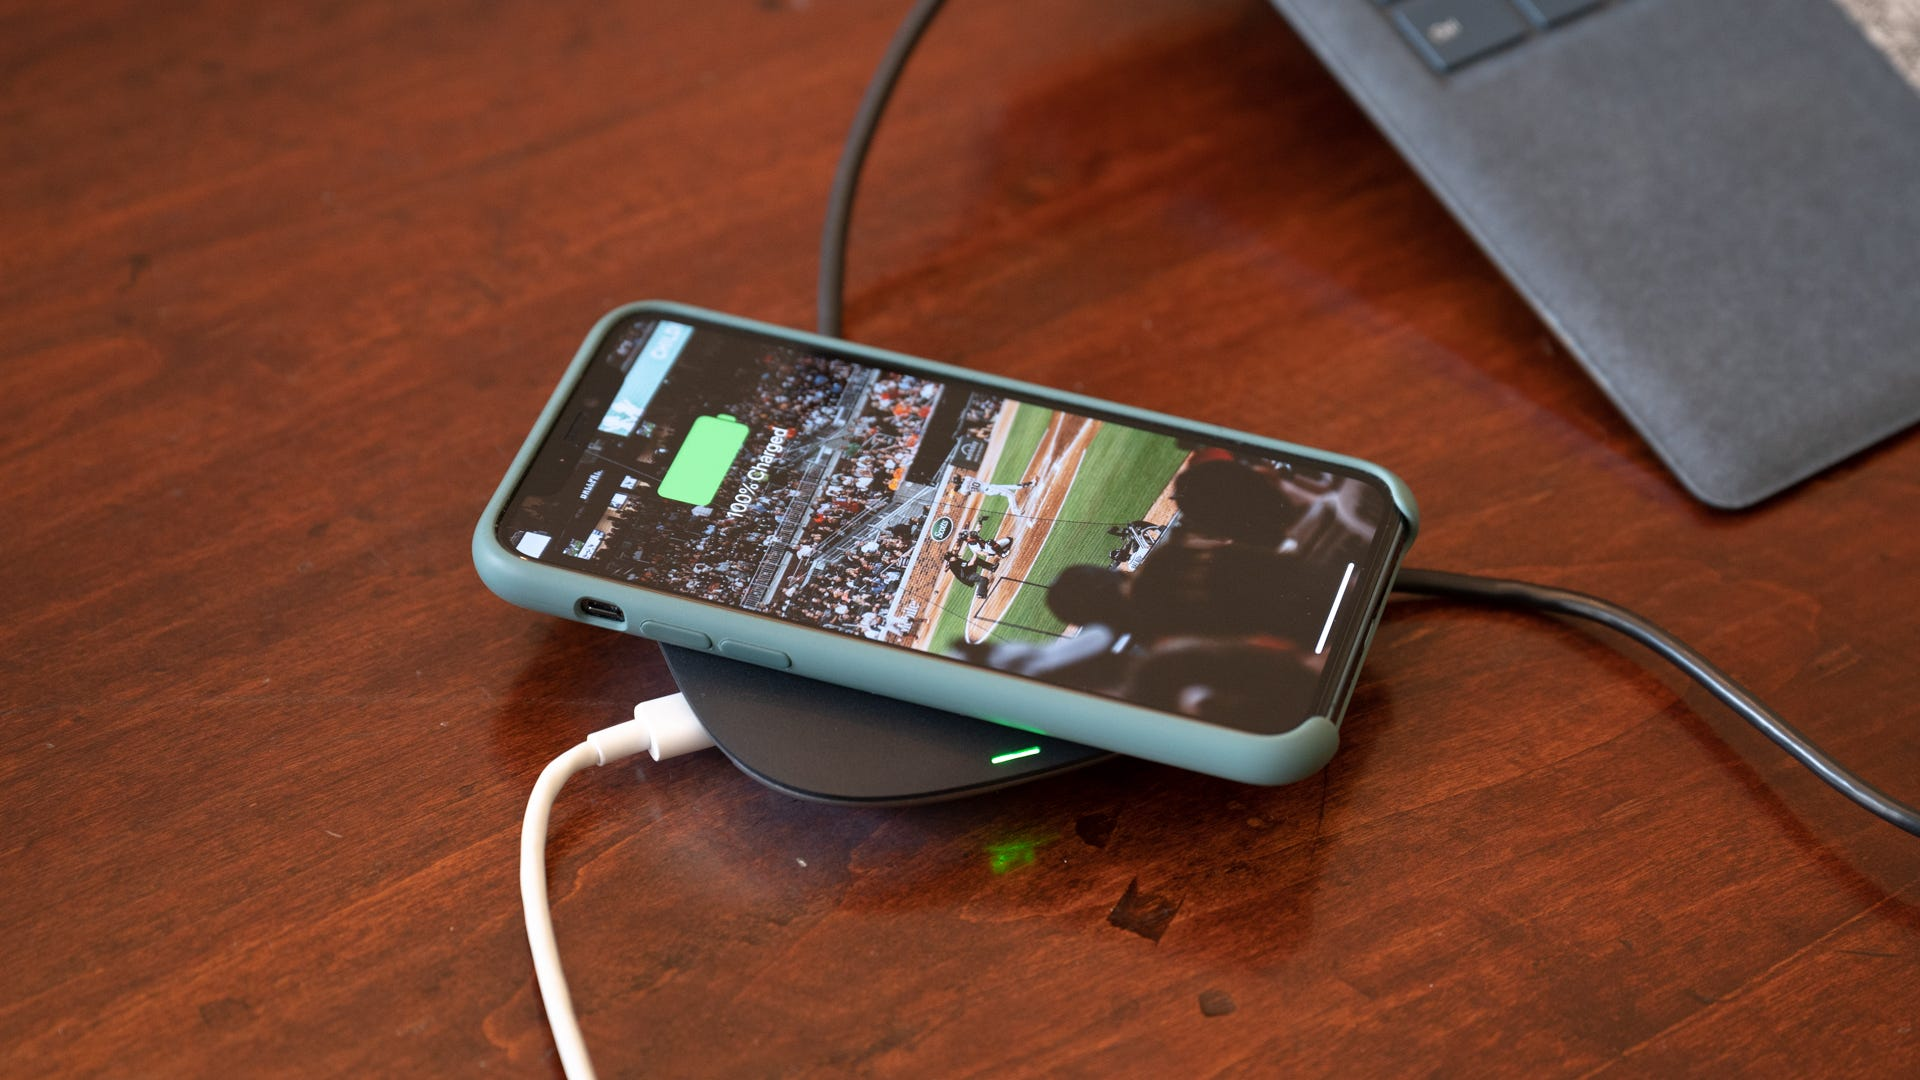 Aukey Wireless Charging Hub iPhone on Top